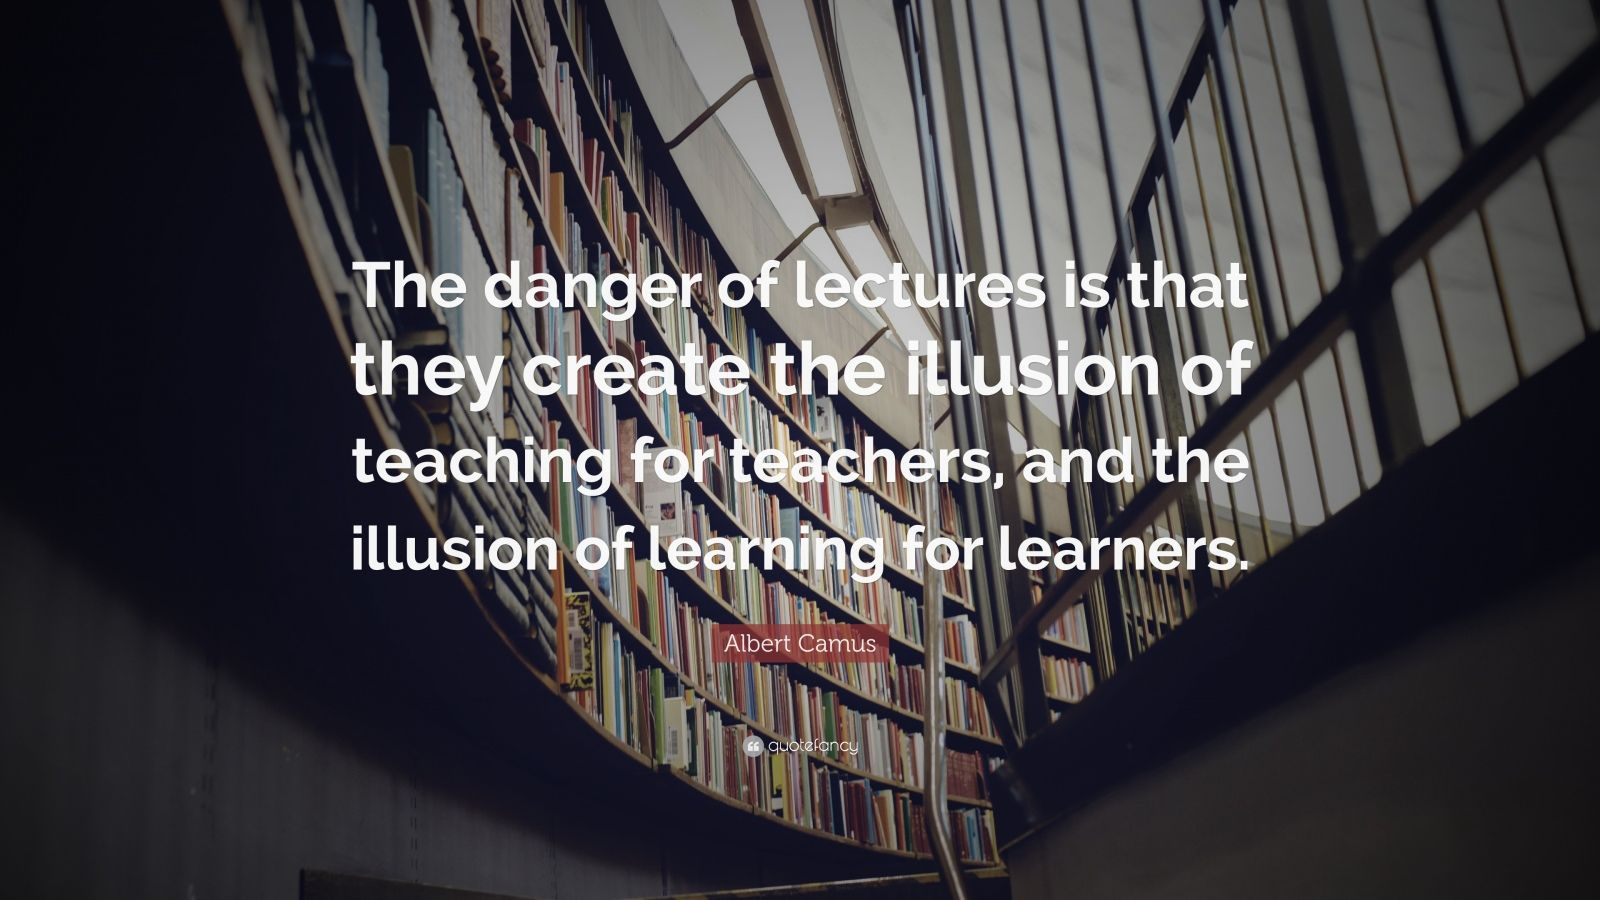 """Albert Camus Quote: """"The danger of lectures is that they create the illusion of teaching for teachers, and the illusion of learning for learners."""""""